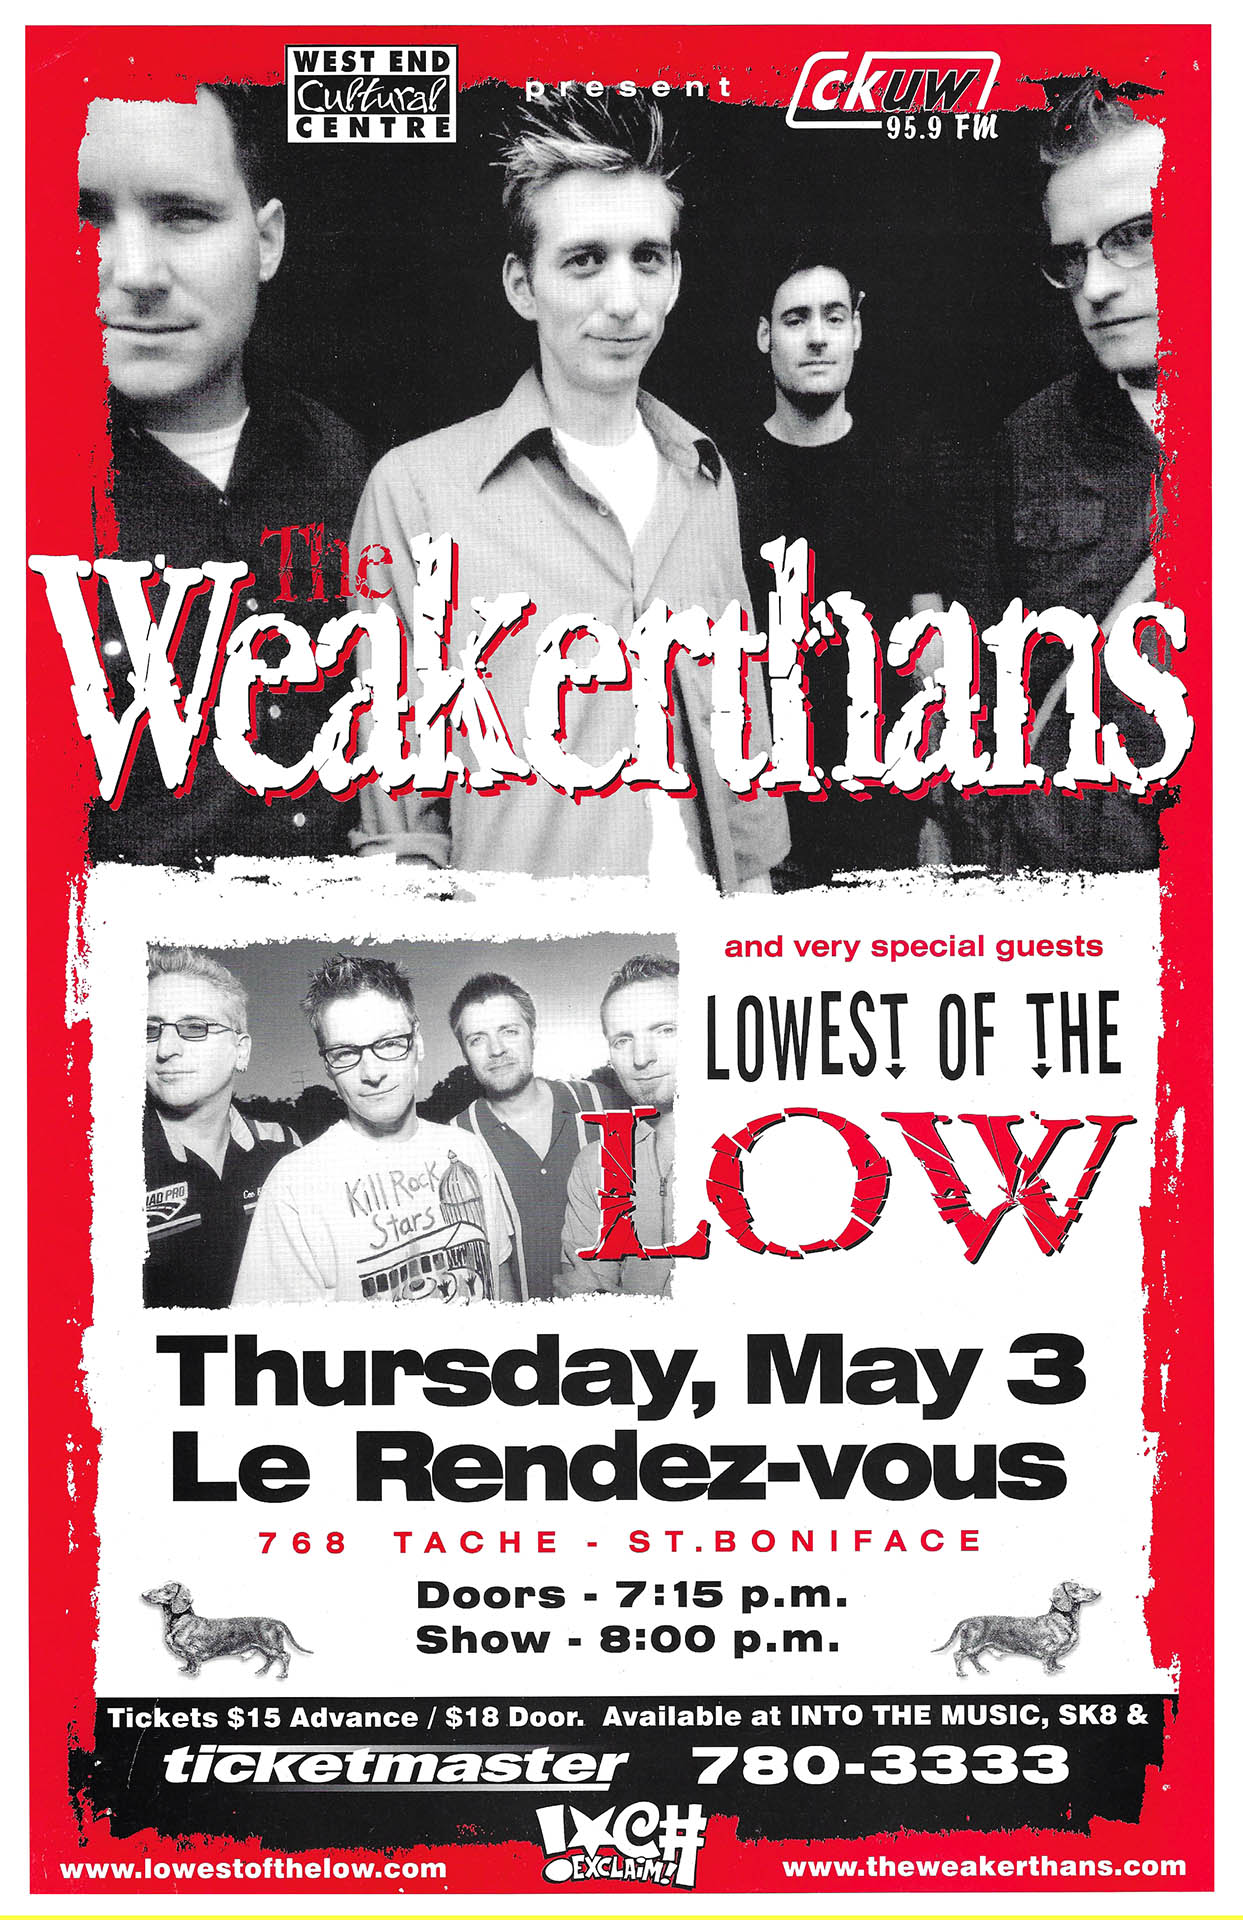 The Weakerthans - 1990